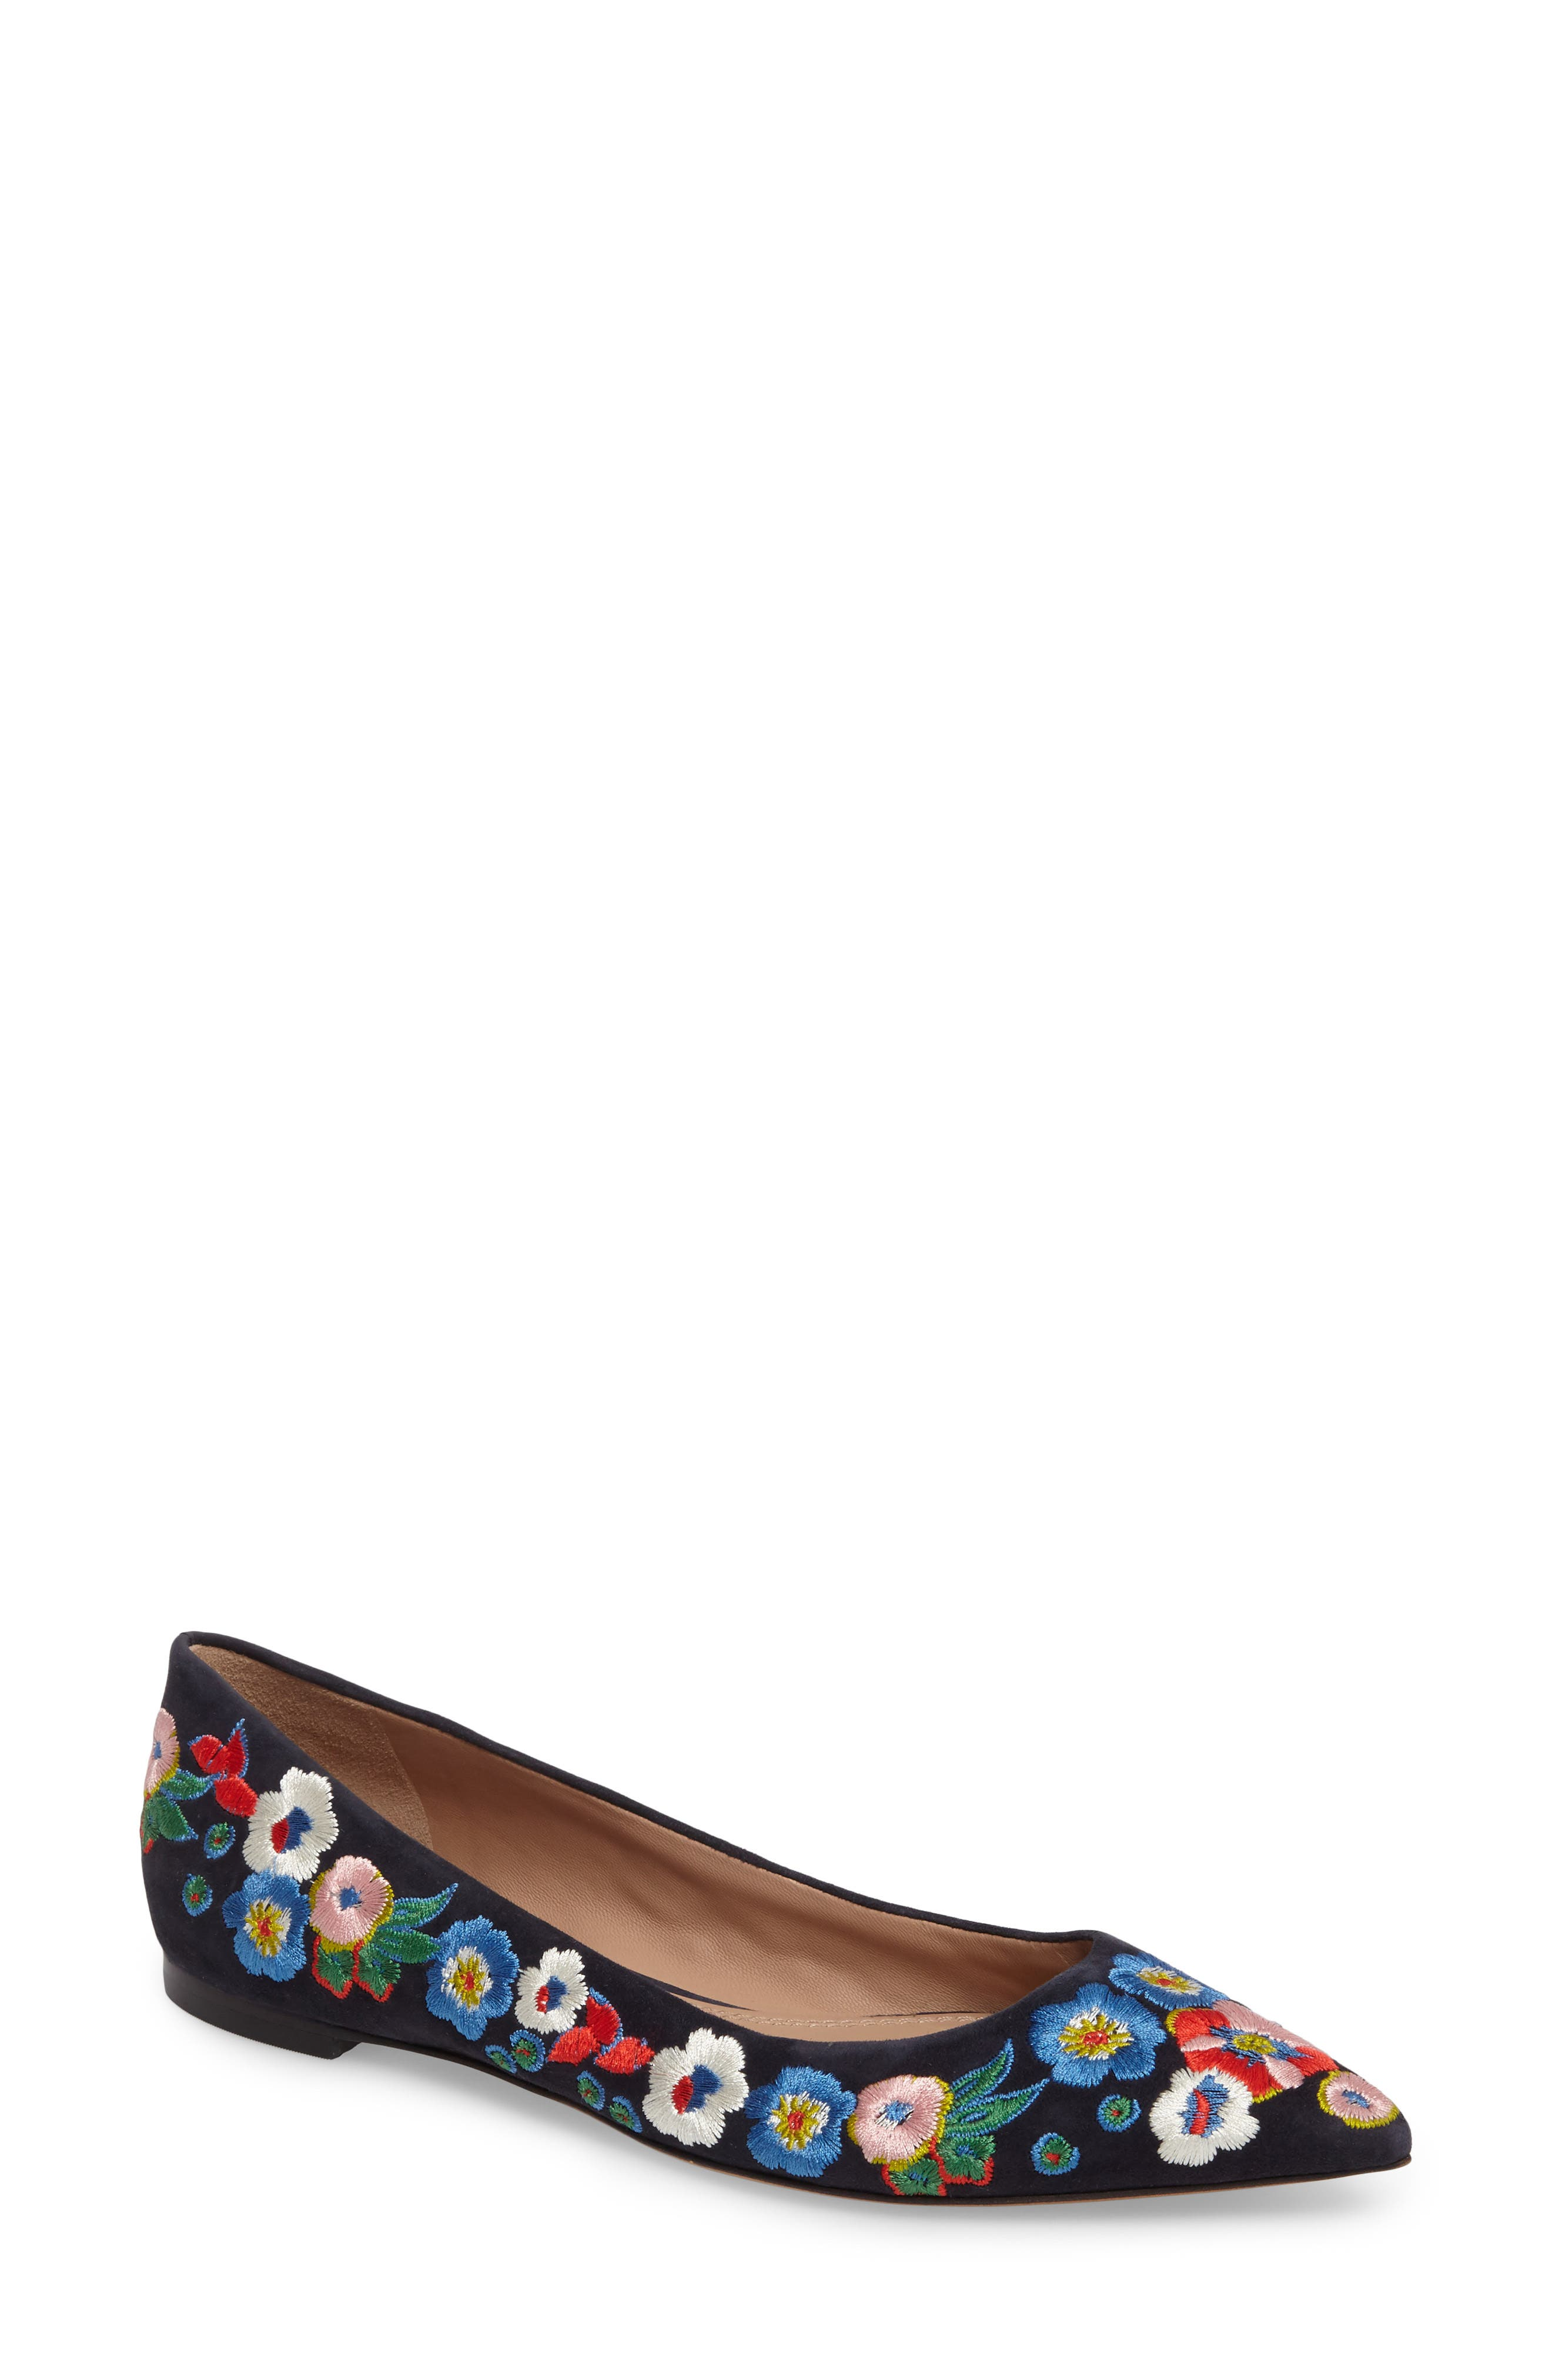 Main Image - Tory Burch Rosemont Flower Embroidered Flat (Women)